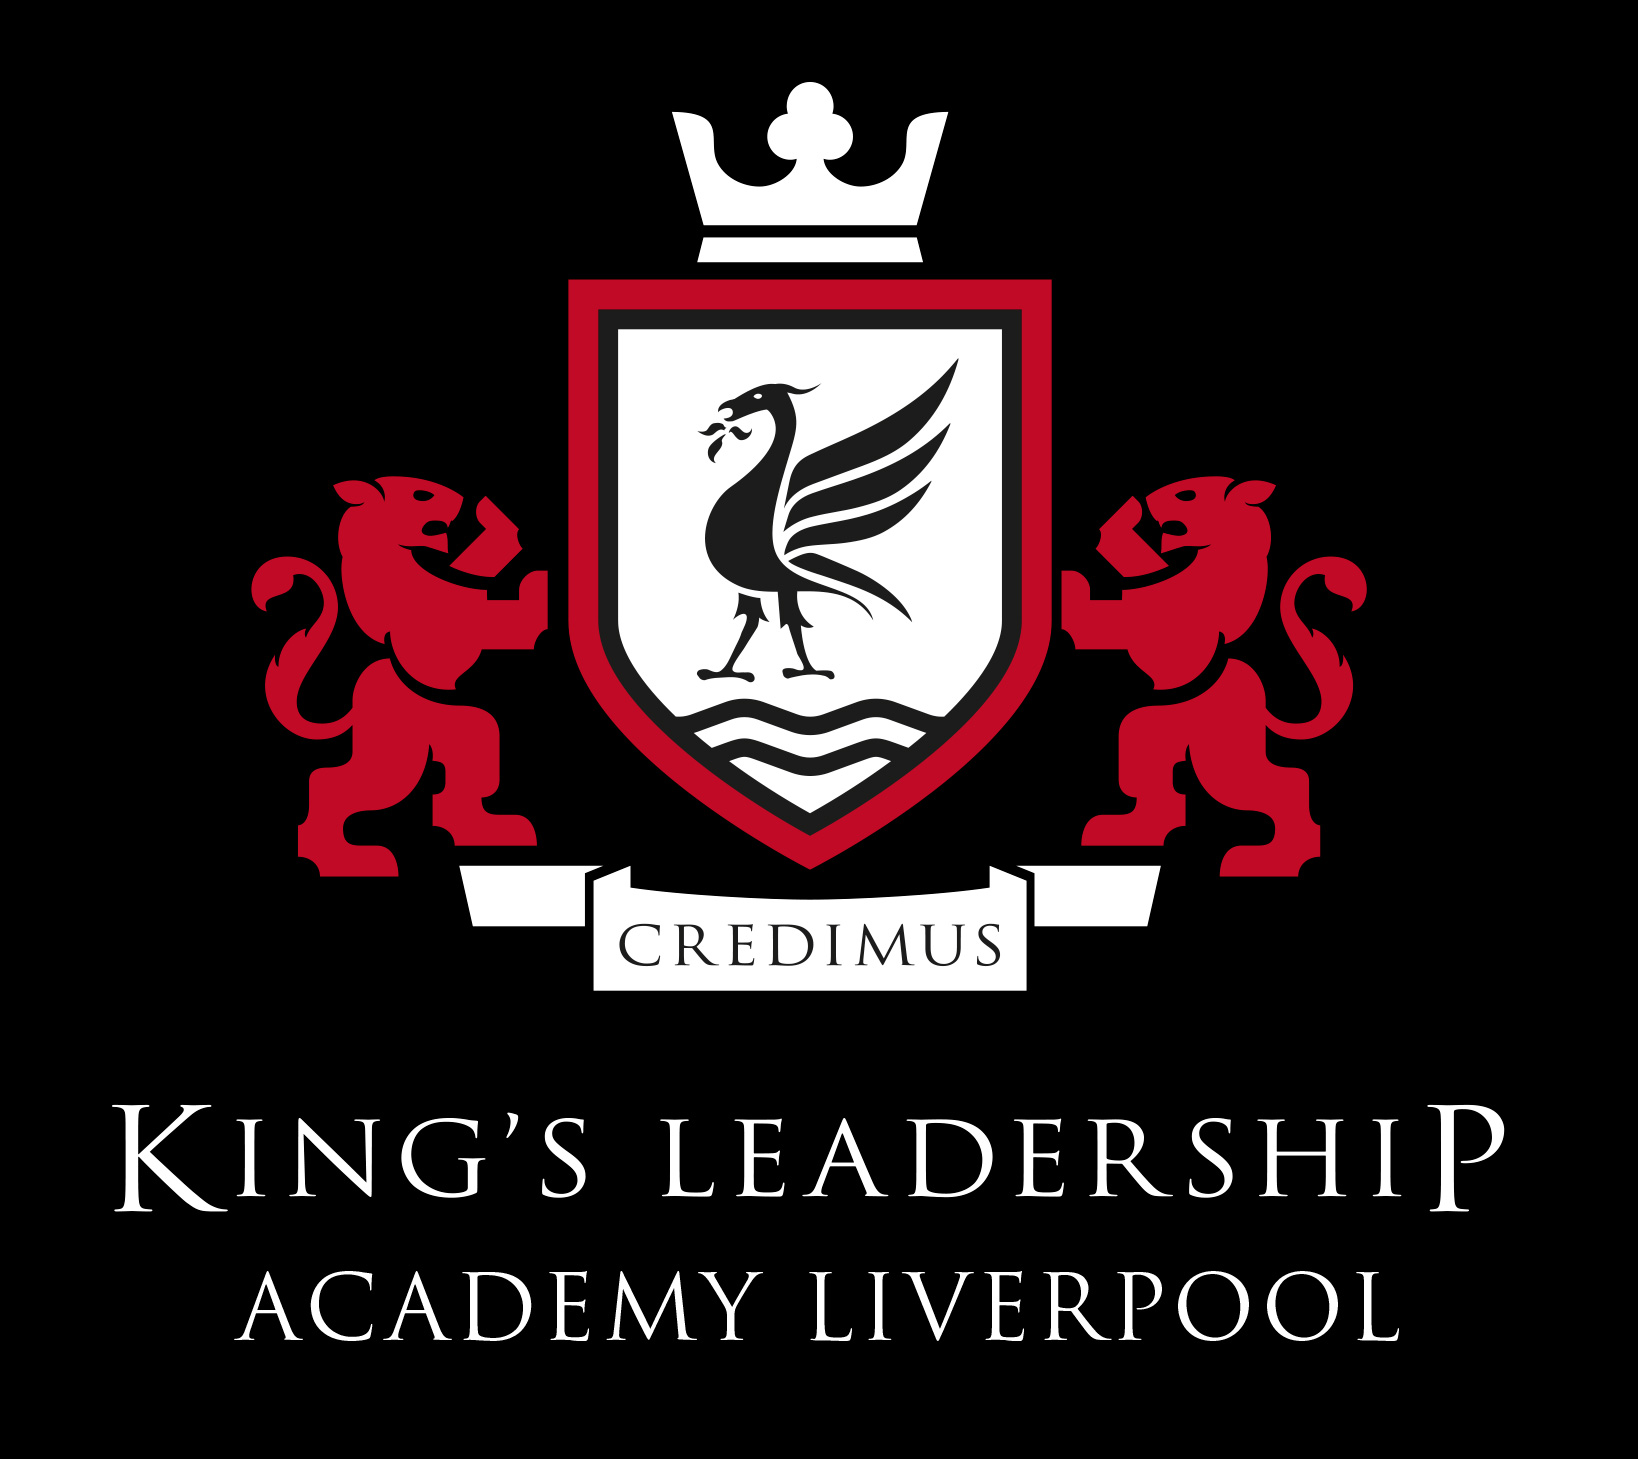 Kings Leadership Academy Liverpool